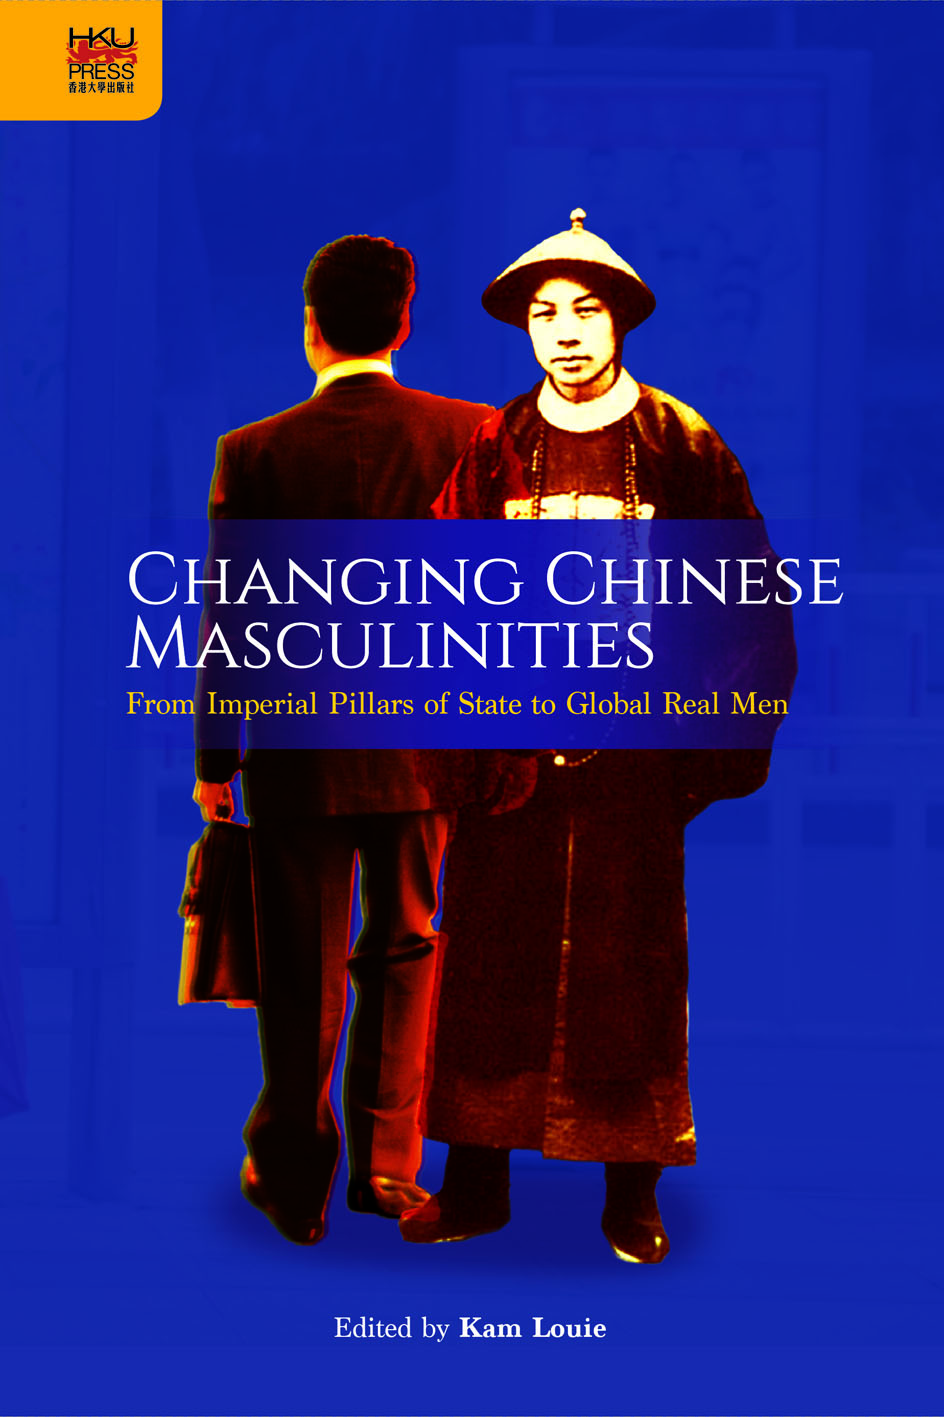 Changing Chinese Masculinities